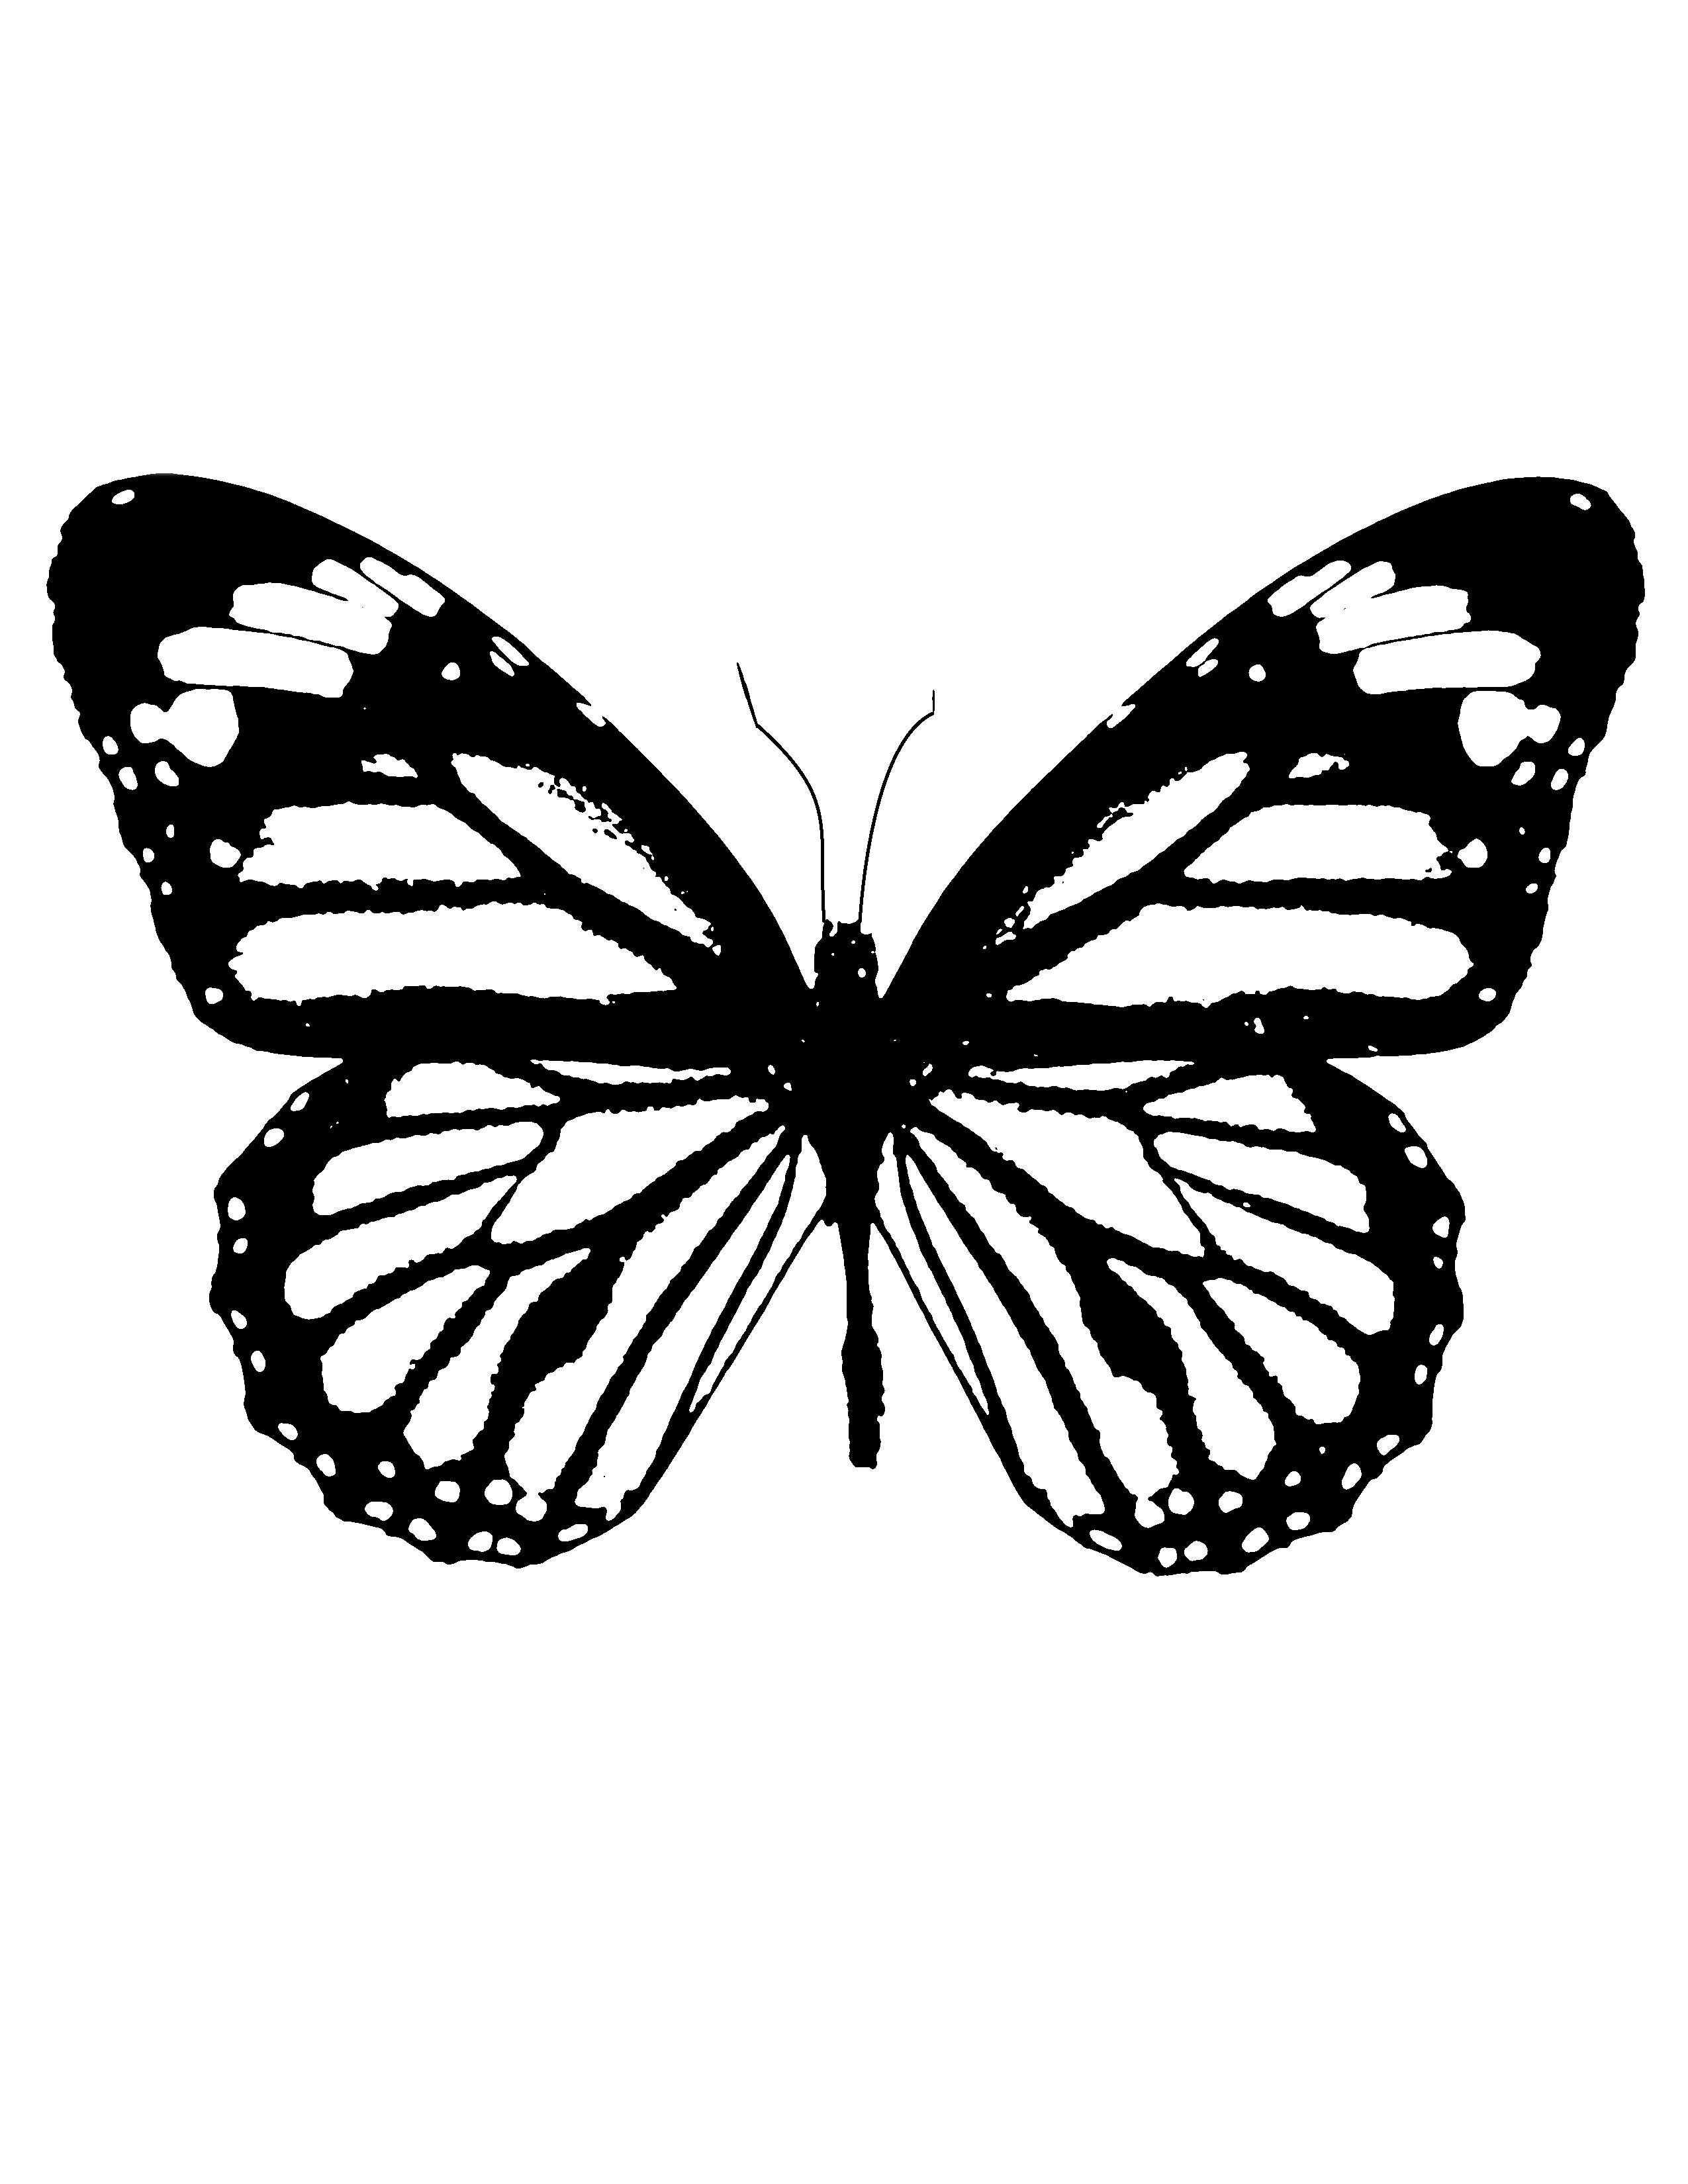 Download Your Free Butterfly Stencil Here Save Time And